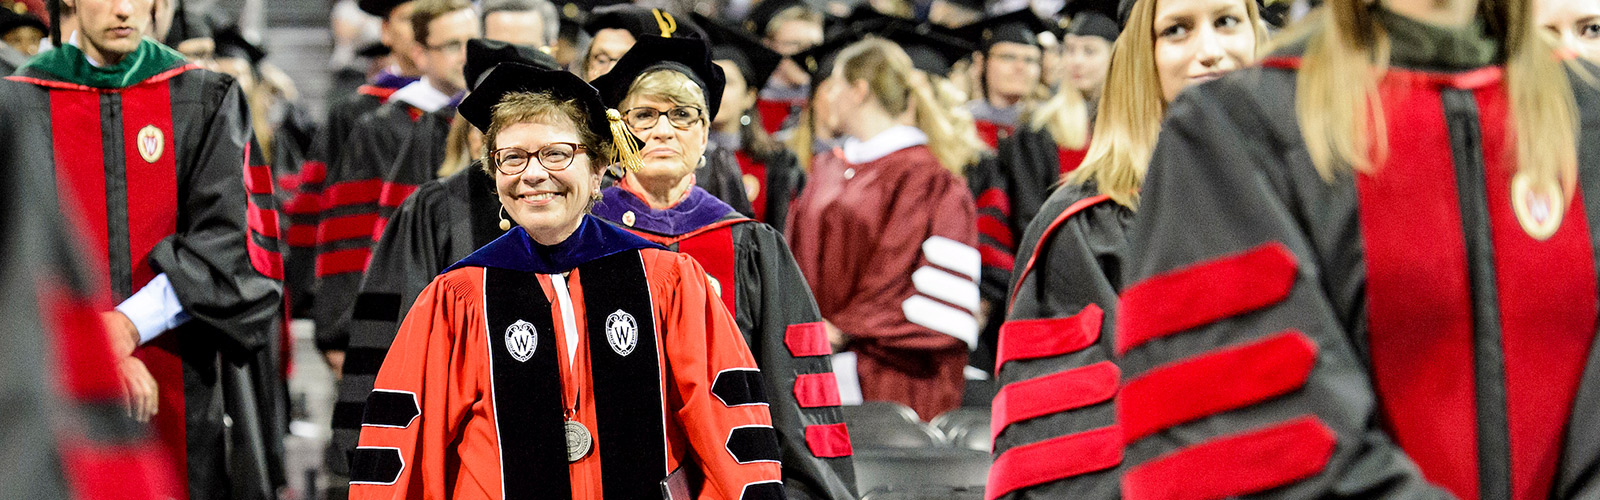 Chancellor Rebecca Blank makes her way to the stage during spring commencement ceremony at the Kohl Center.